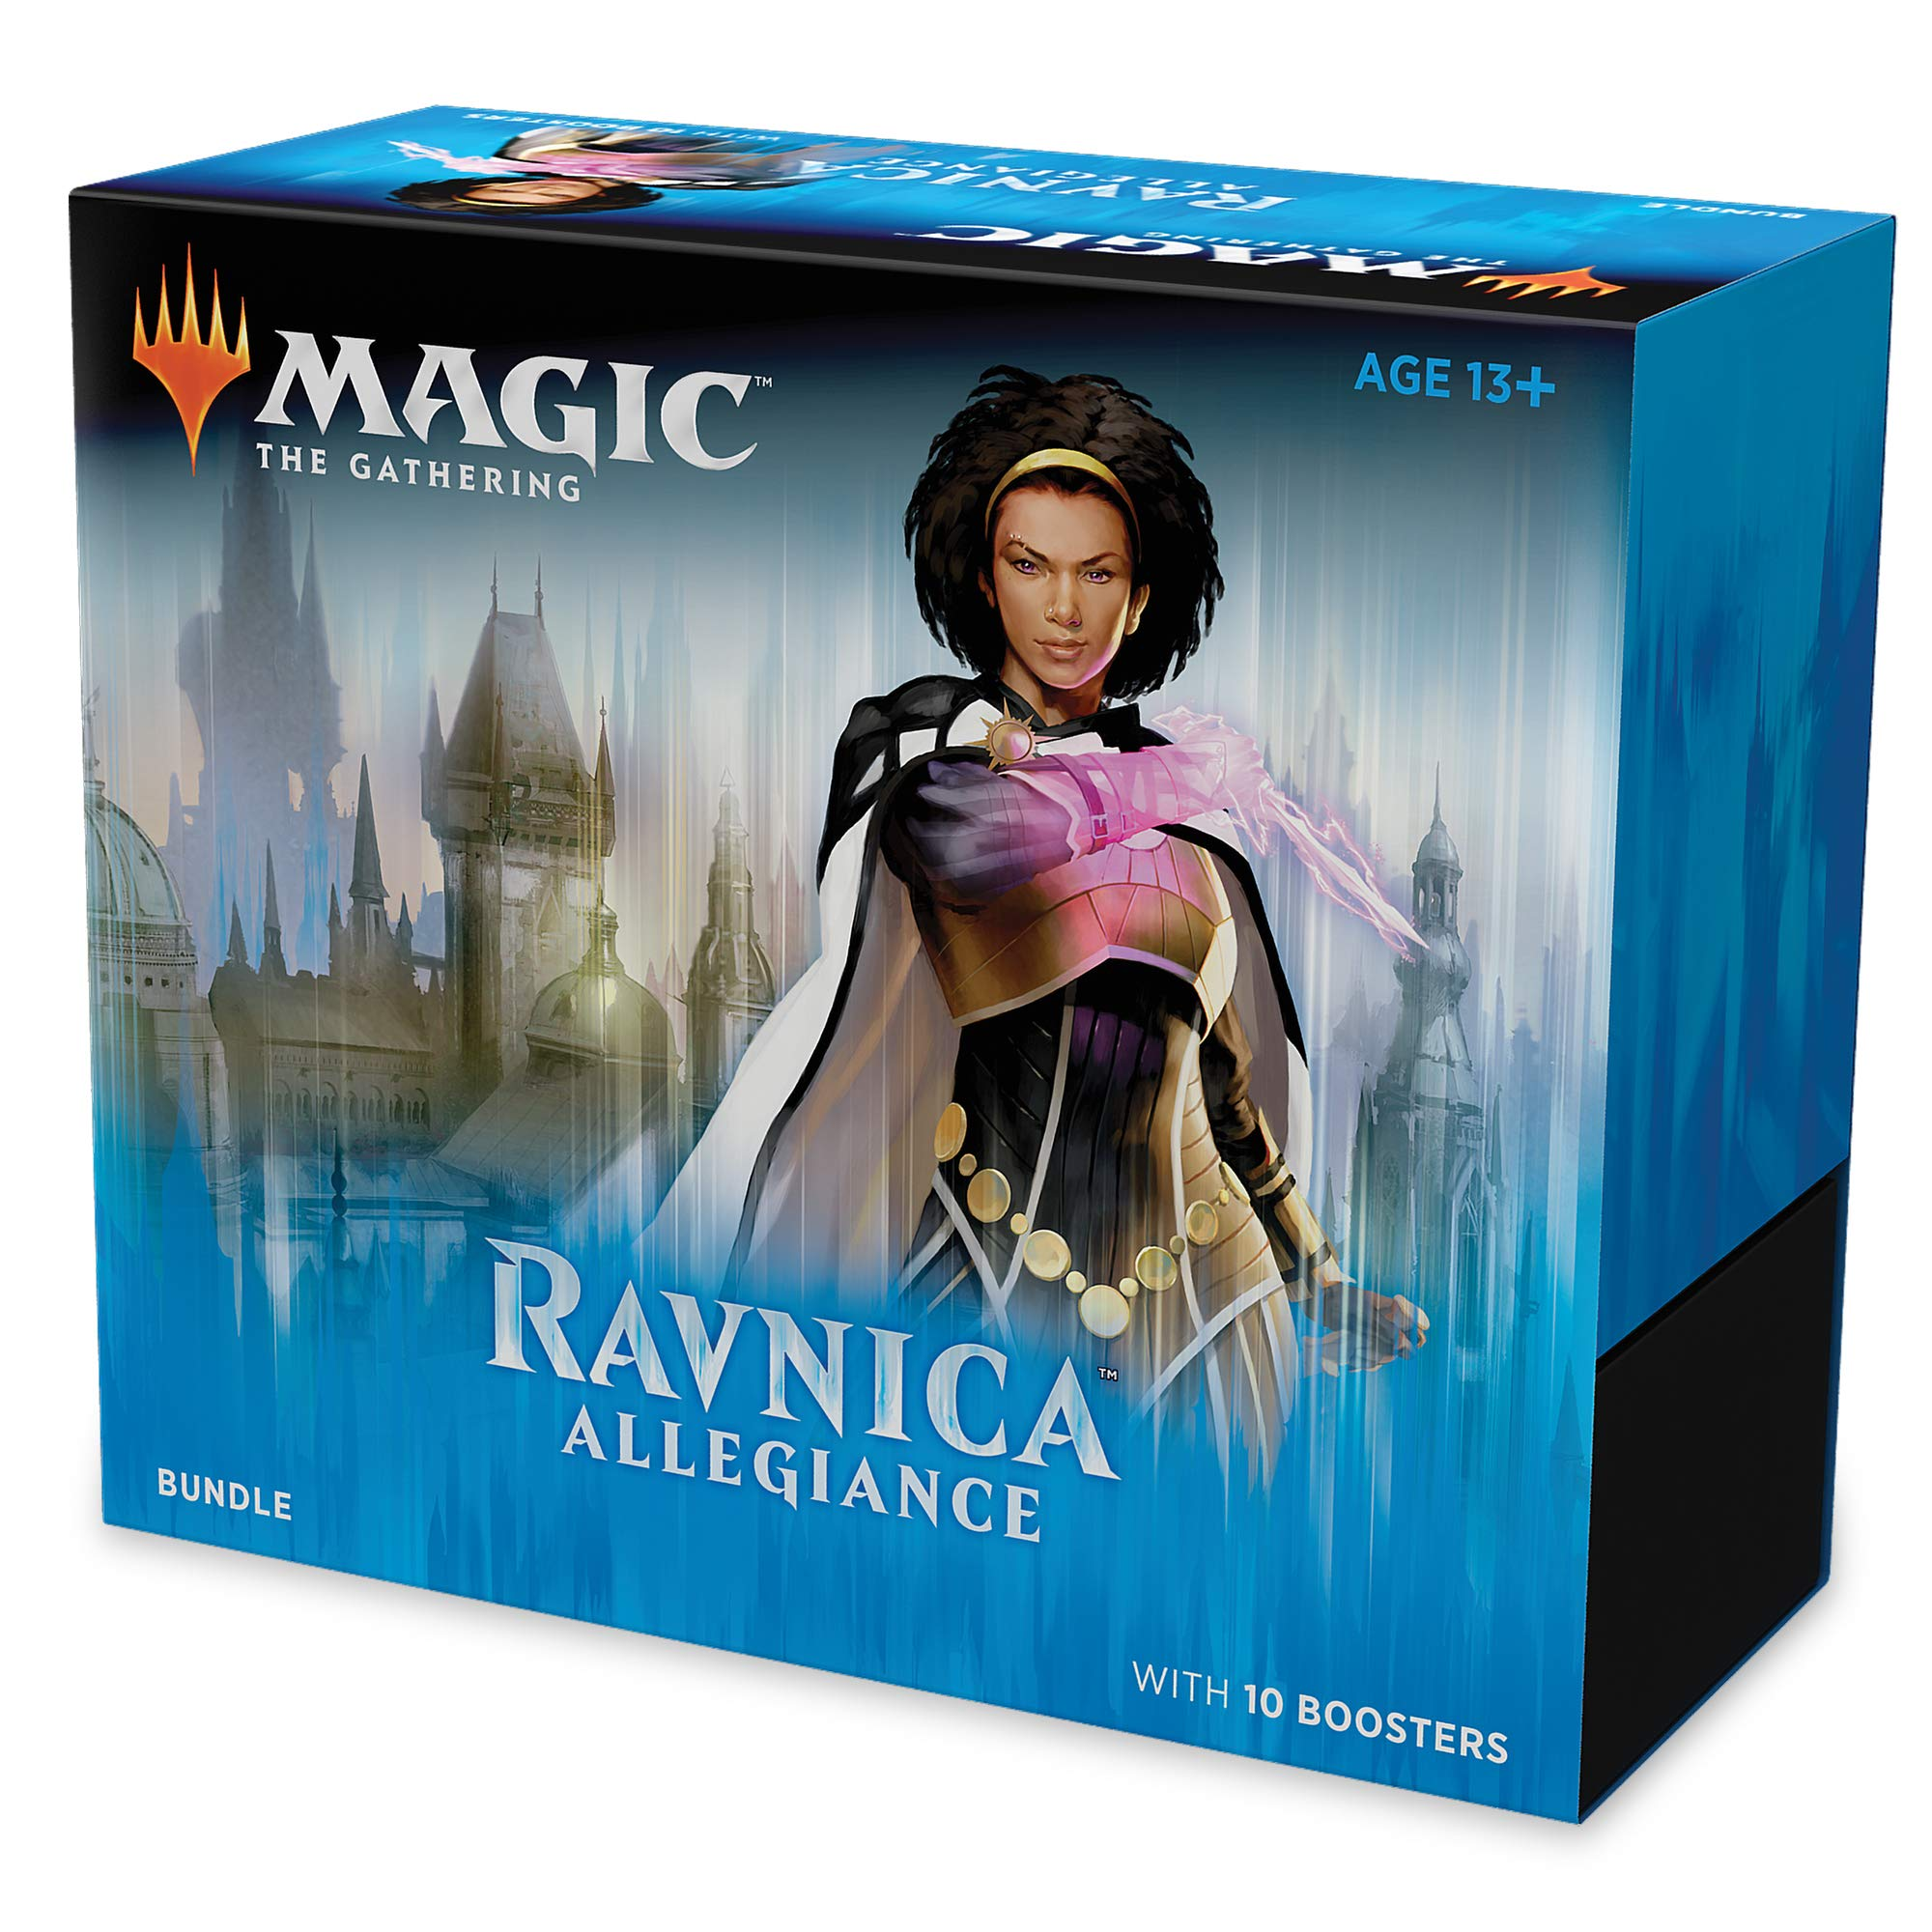 Magic: The Gathering Ravnica Allegiance Bundle | 10 Booster Packs + Land Cards (230 Cards) | Accessories by Magic: The Gathering (Image #1)